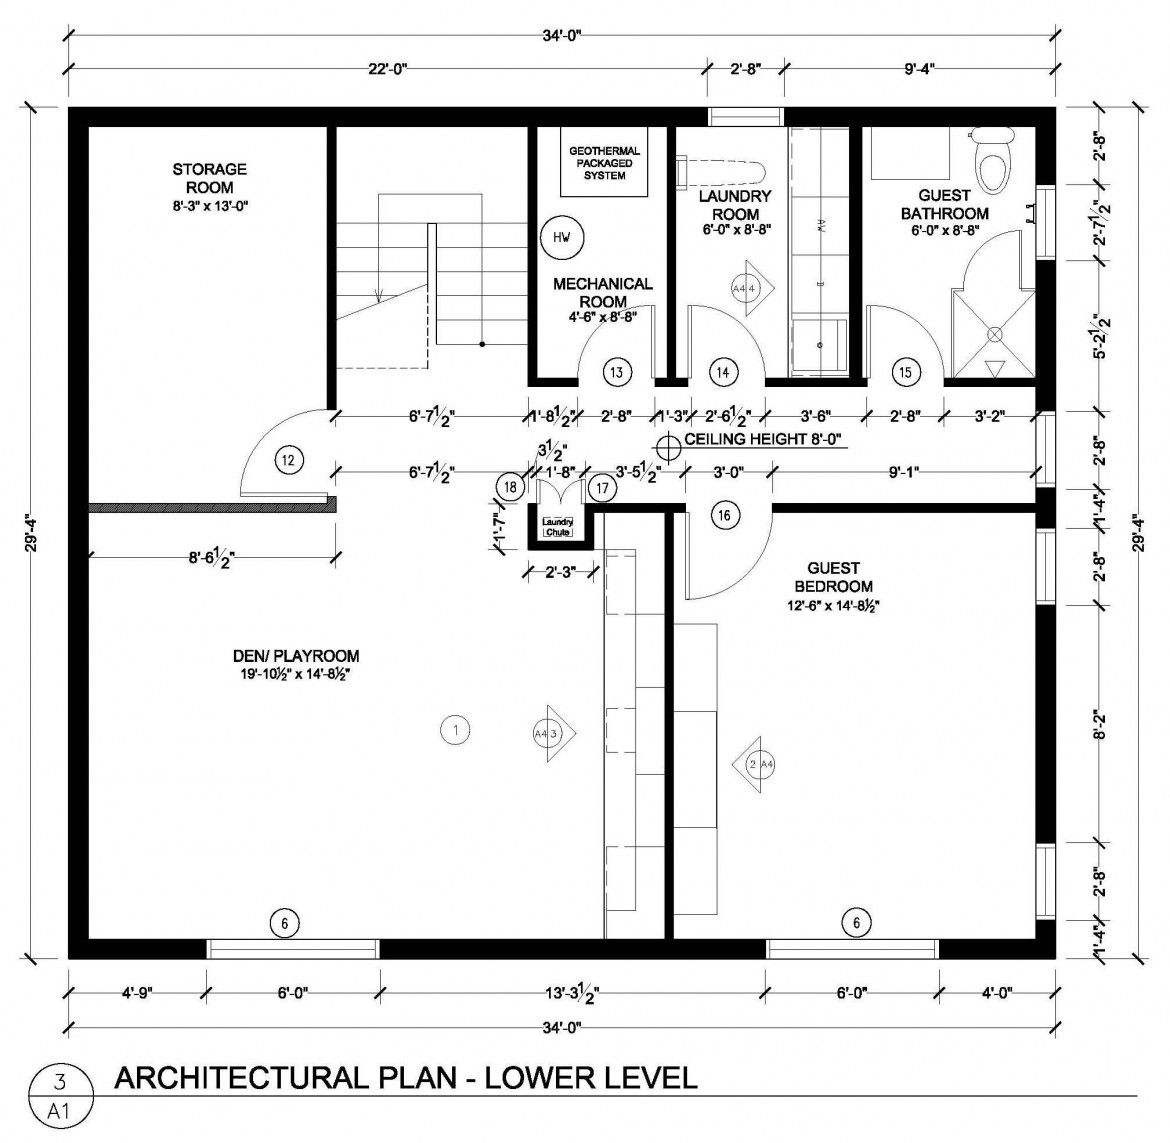 Design Home Layout Built Modern Style All Room Free Drawing House Floor Plans Moreover Homes Room Layout Design Garage Workshop Plans Mudroom Floor Plan